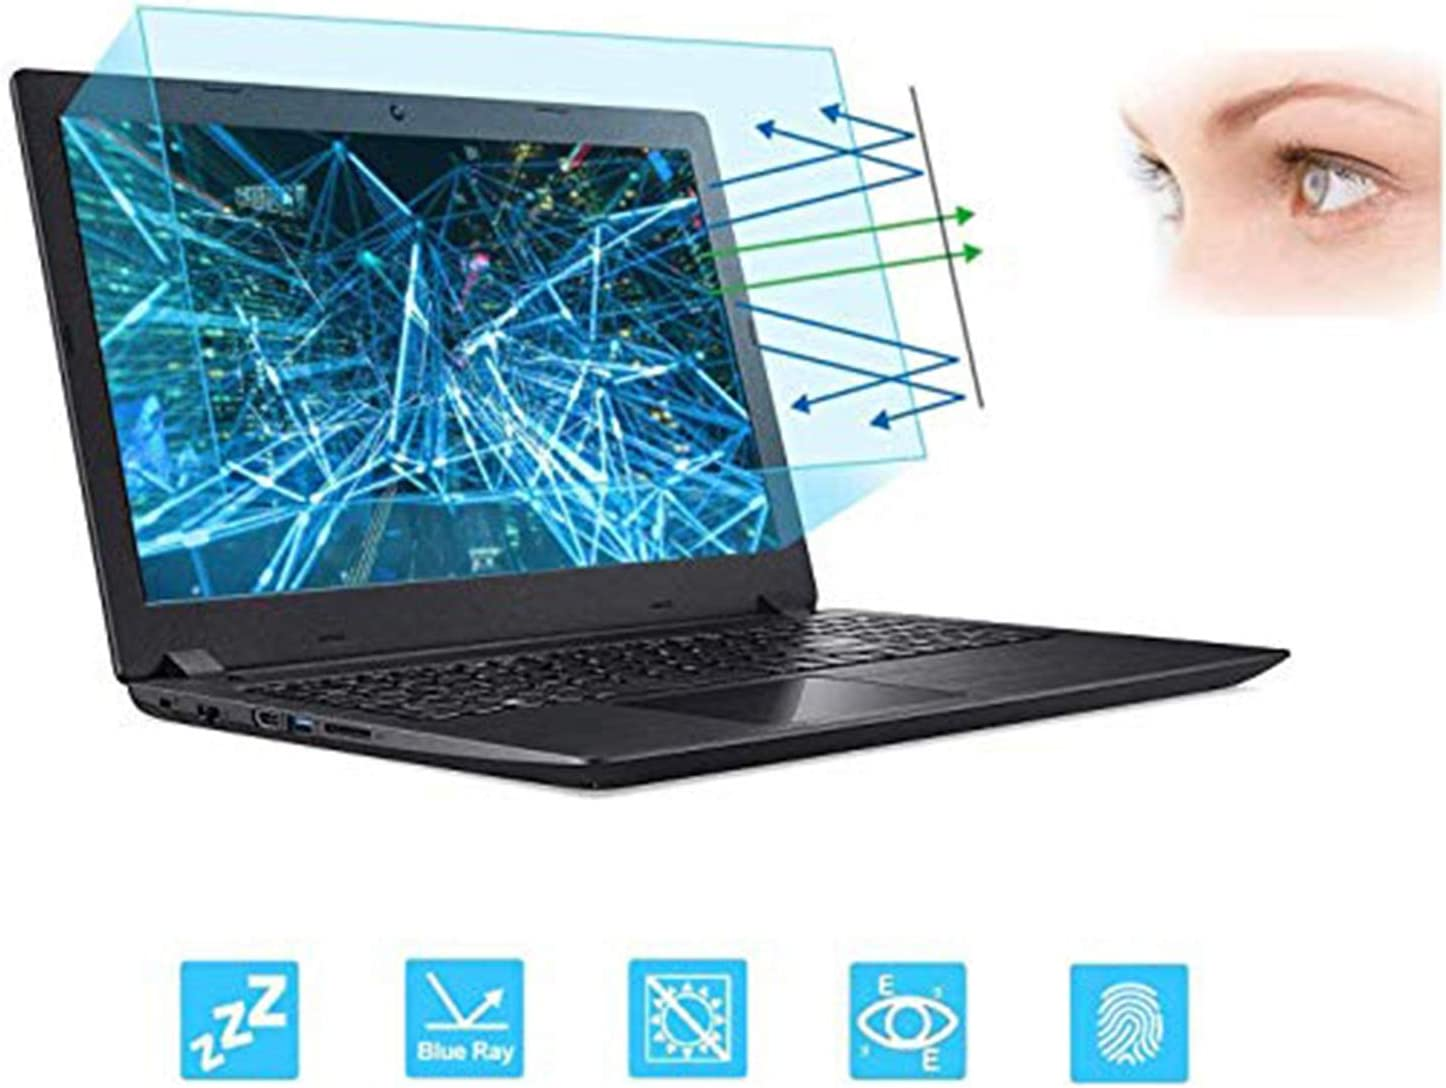 """15.6 Inch Laptop Screen Protector -Blue Light and Anti Glare Filter, FORITO Eye Protection Blue Light Blocking & Anti Glare Screen Protector for 15.6"""" with 16:9 Aspect Ratio Laptop"""